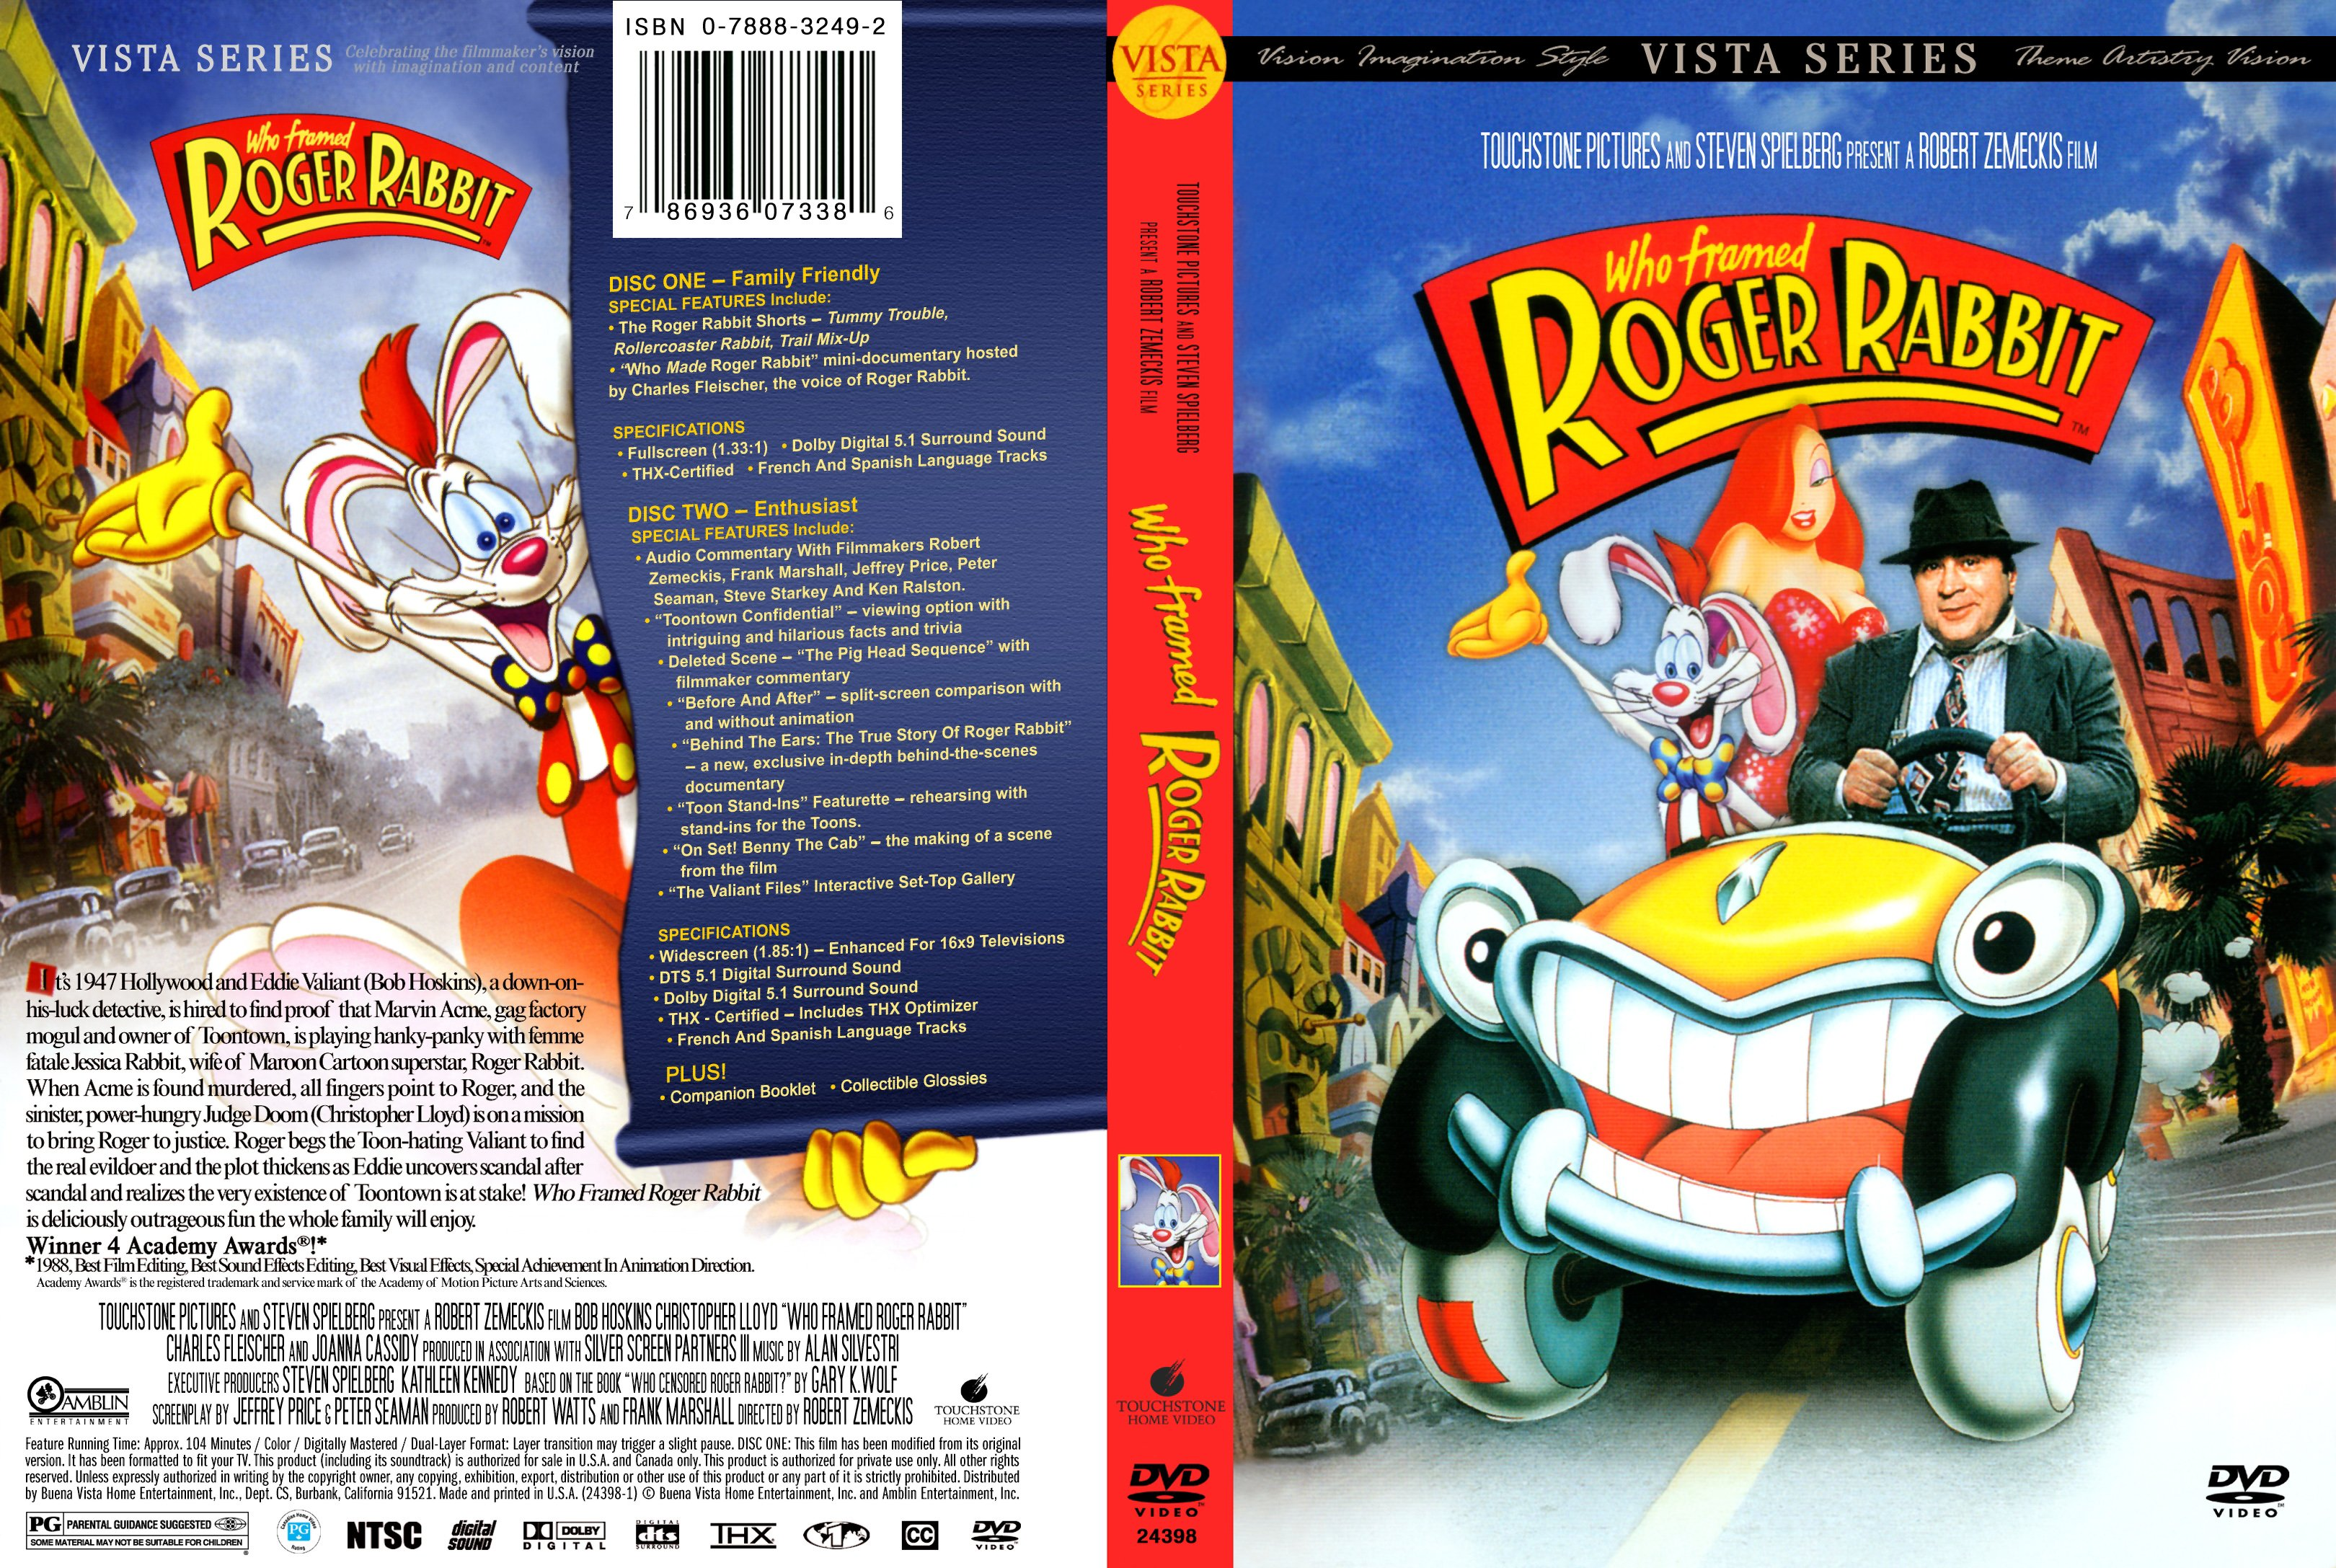 Covers Box Sk Who Framed Roger Rabbit 1988 High Quality Dvd Blueray Movie